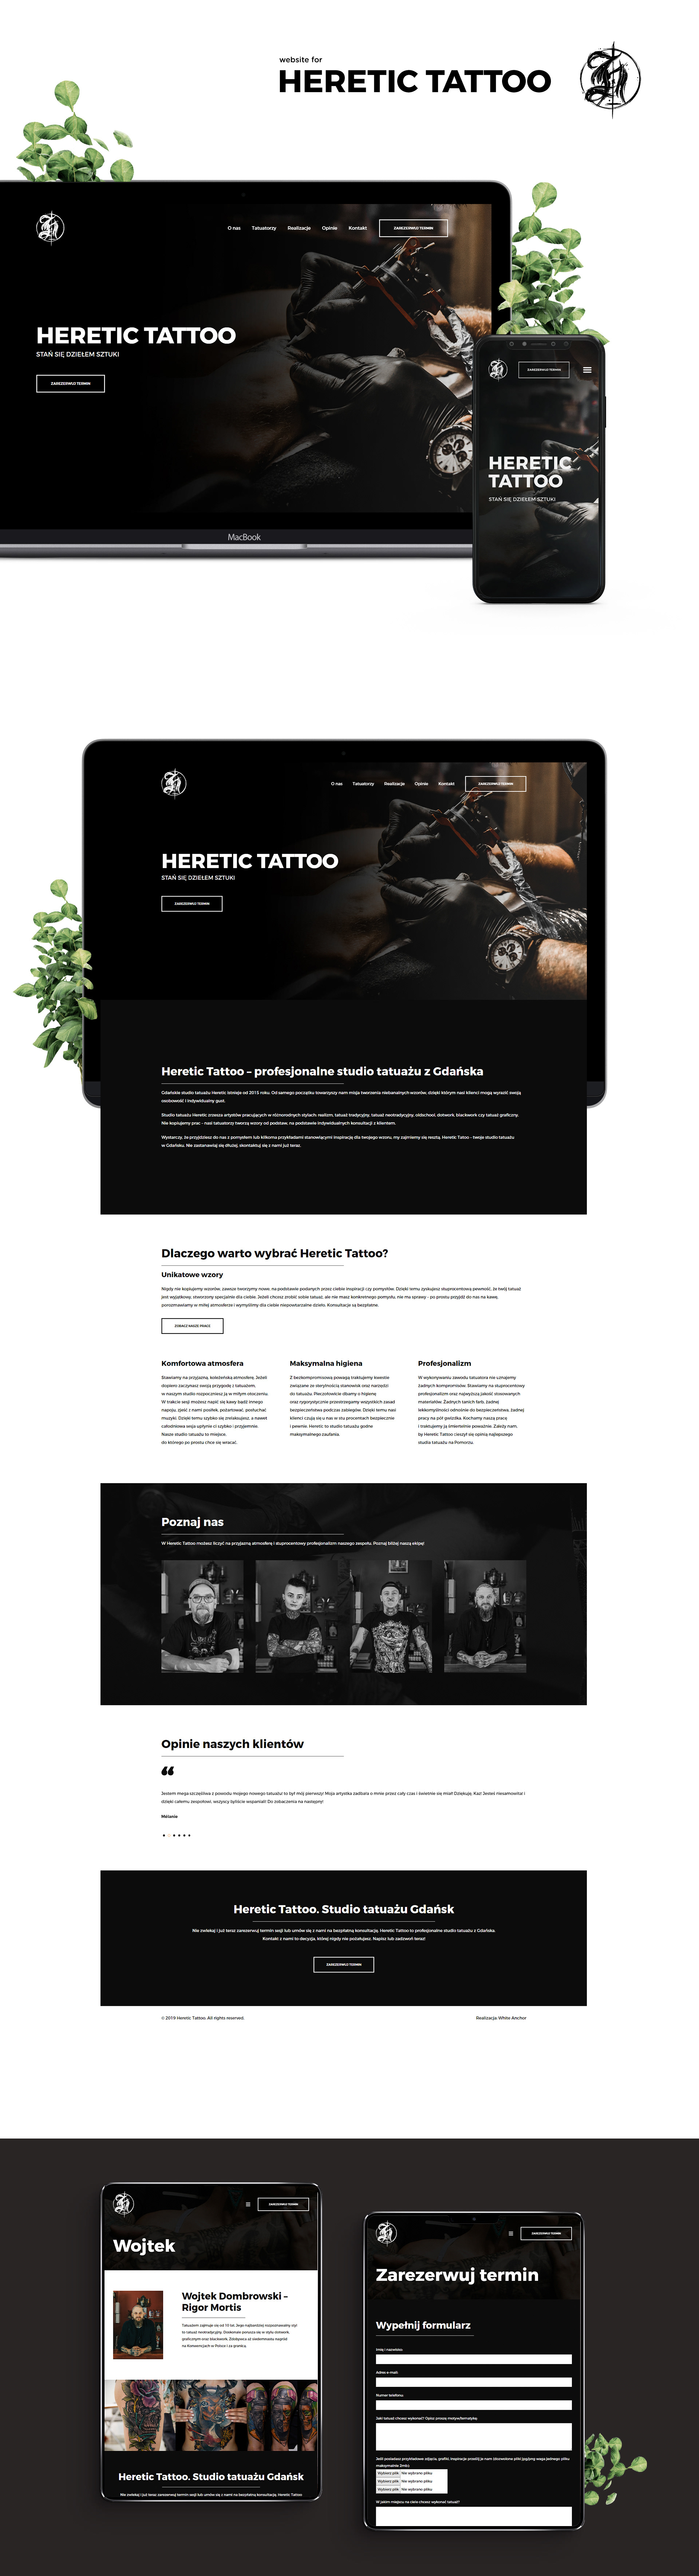 Website For Heretic Tattoo Studio On Behance